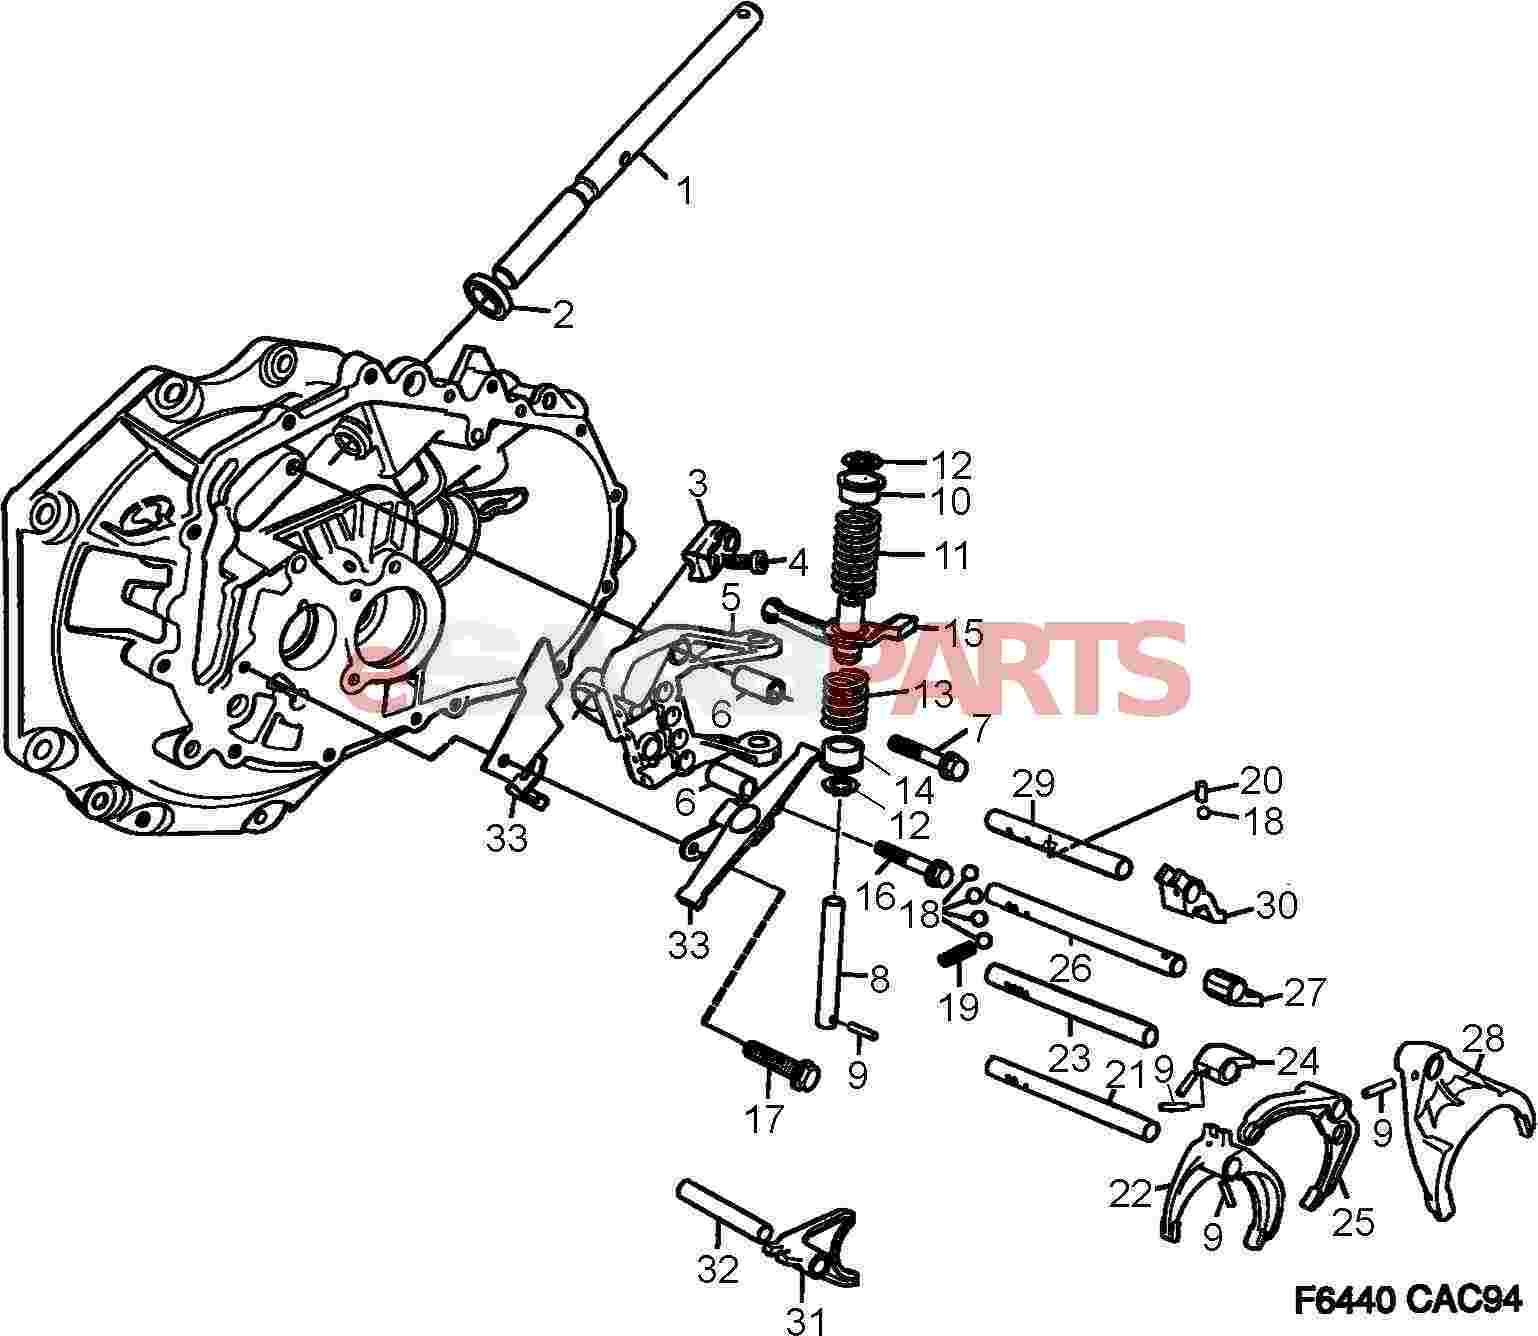 [1998 Saab 9000 Manual Transmission Hub Replacement